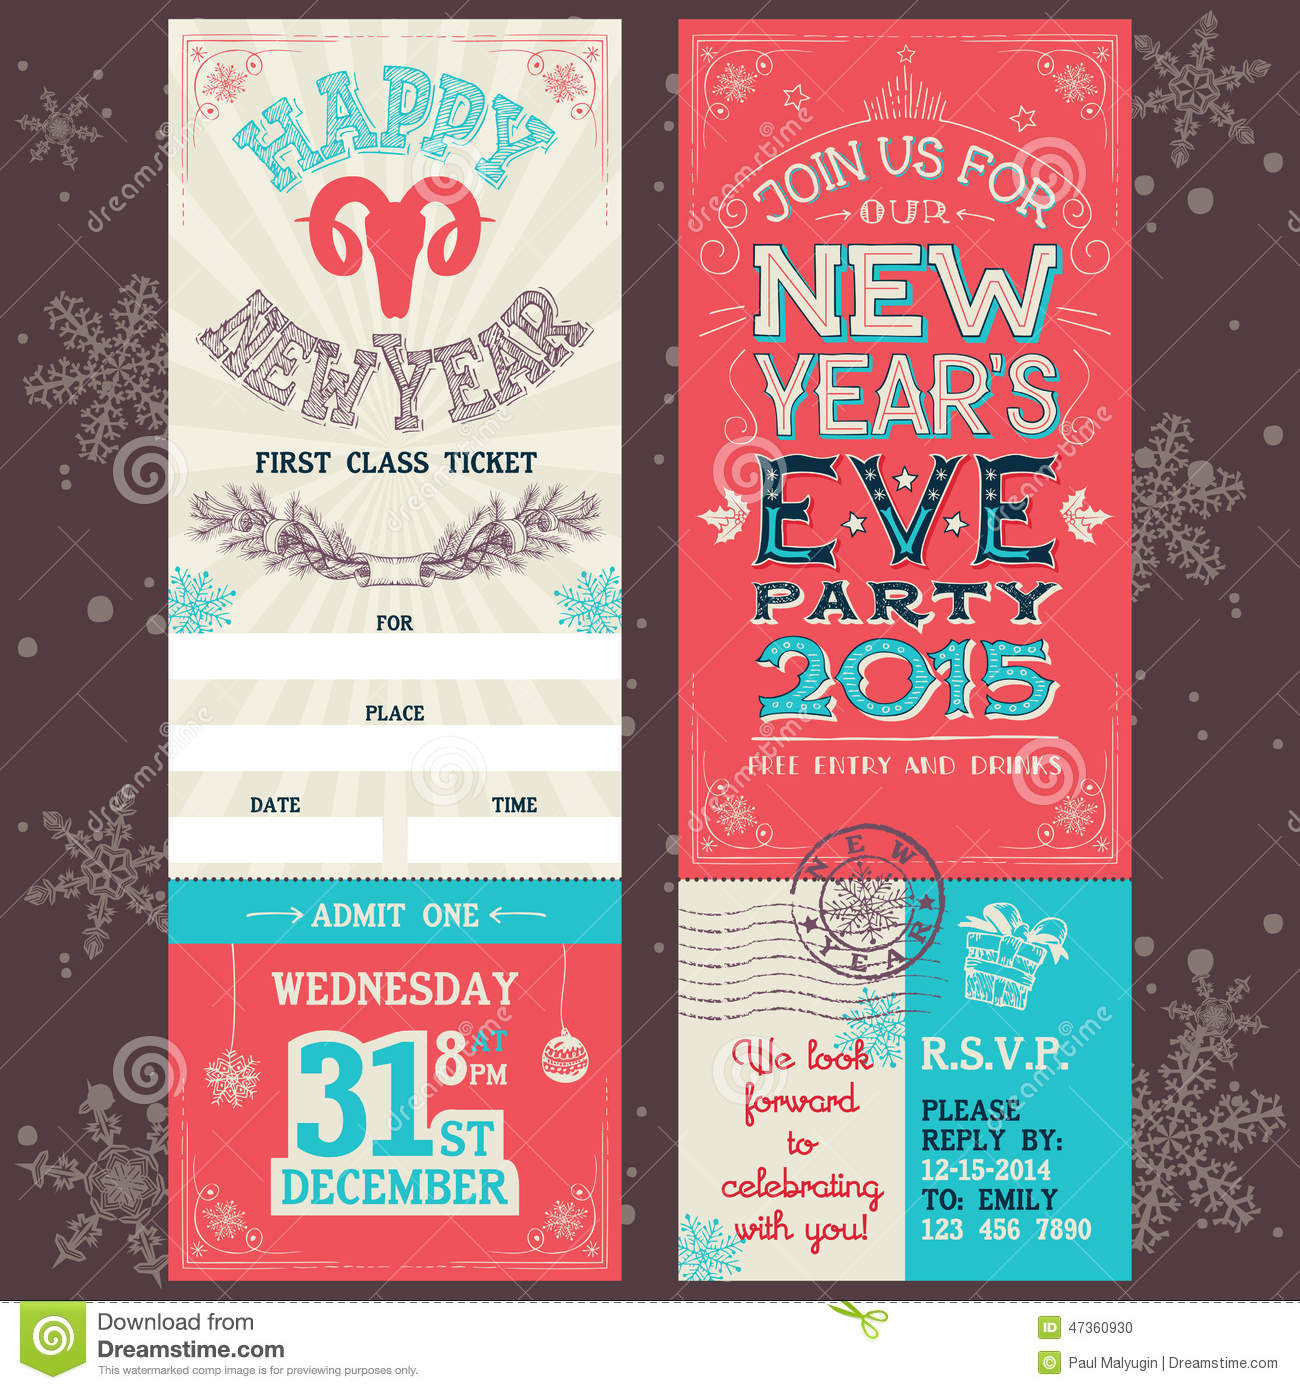 Christmas Party Ticket Template Free: New Year's Eve Party Invitation Ticket Stock Vector